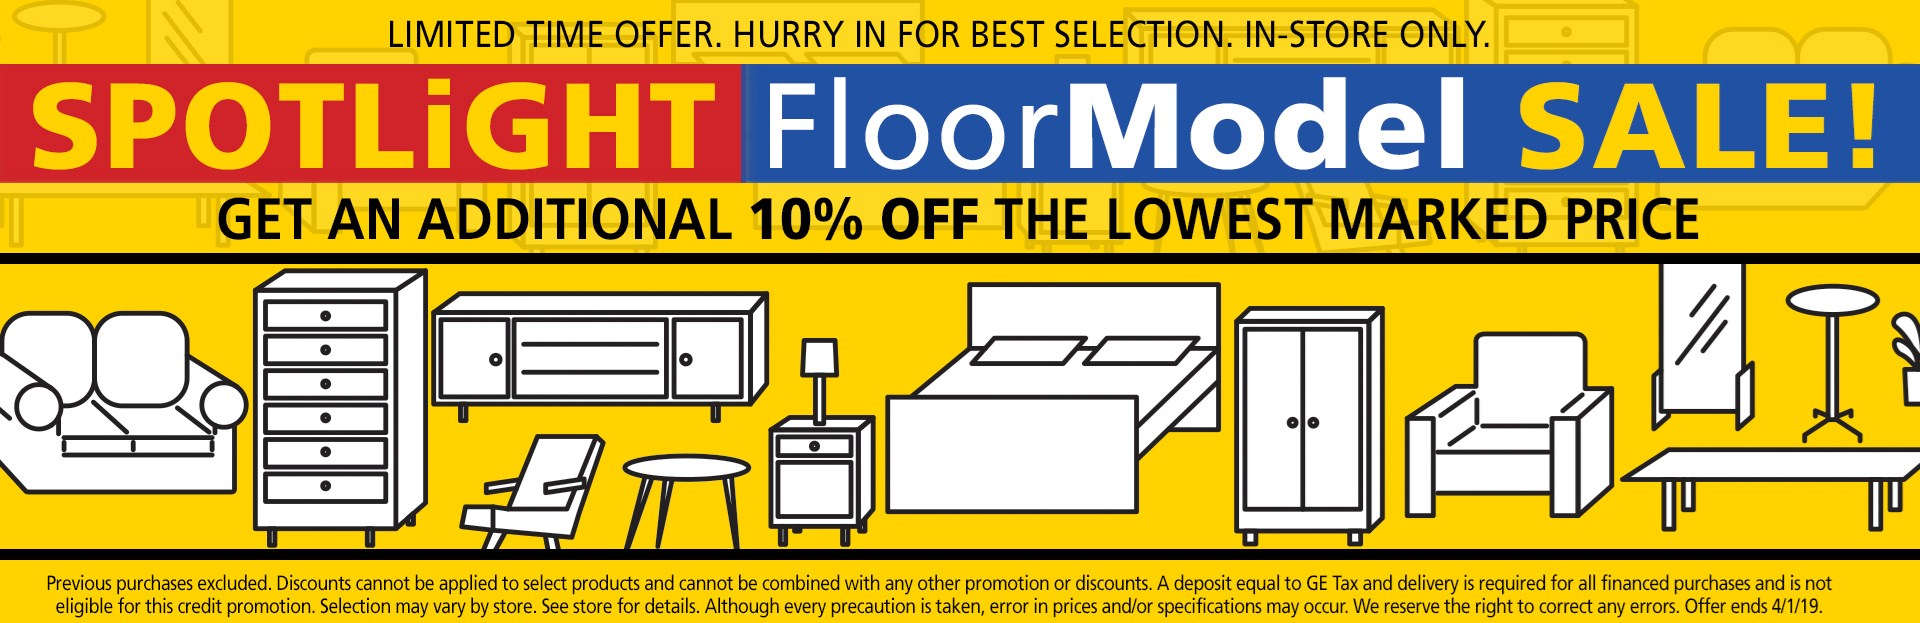 Floor model sale; get an additional 10% off lowest marked price. See store for details.